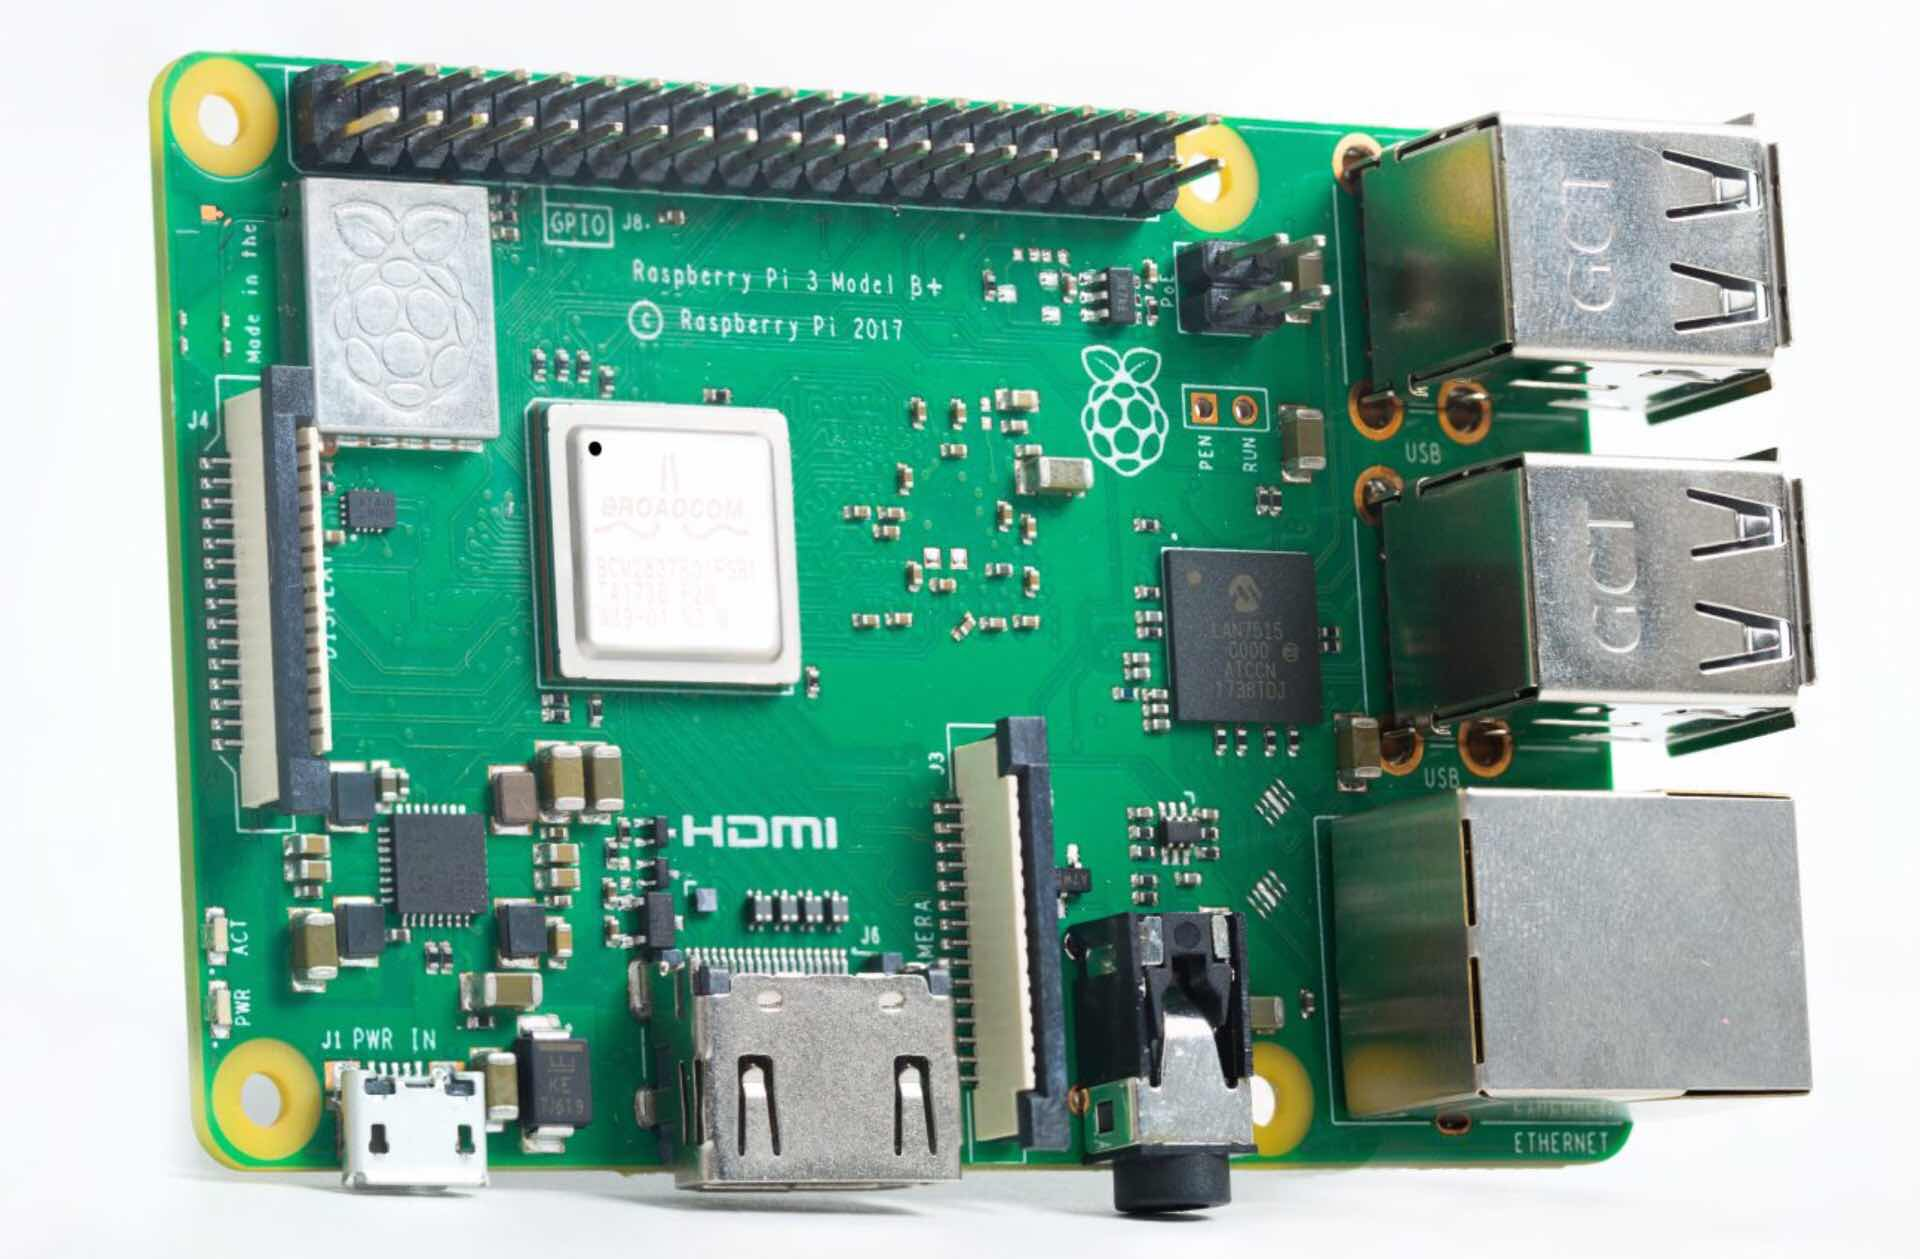 raspberry-pi-3-model-b-plus